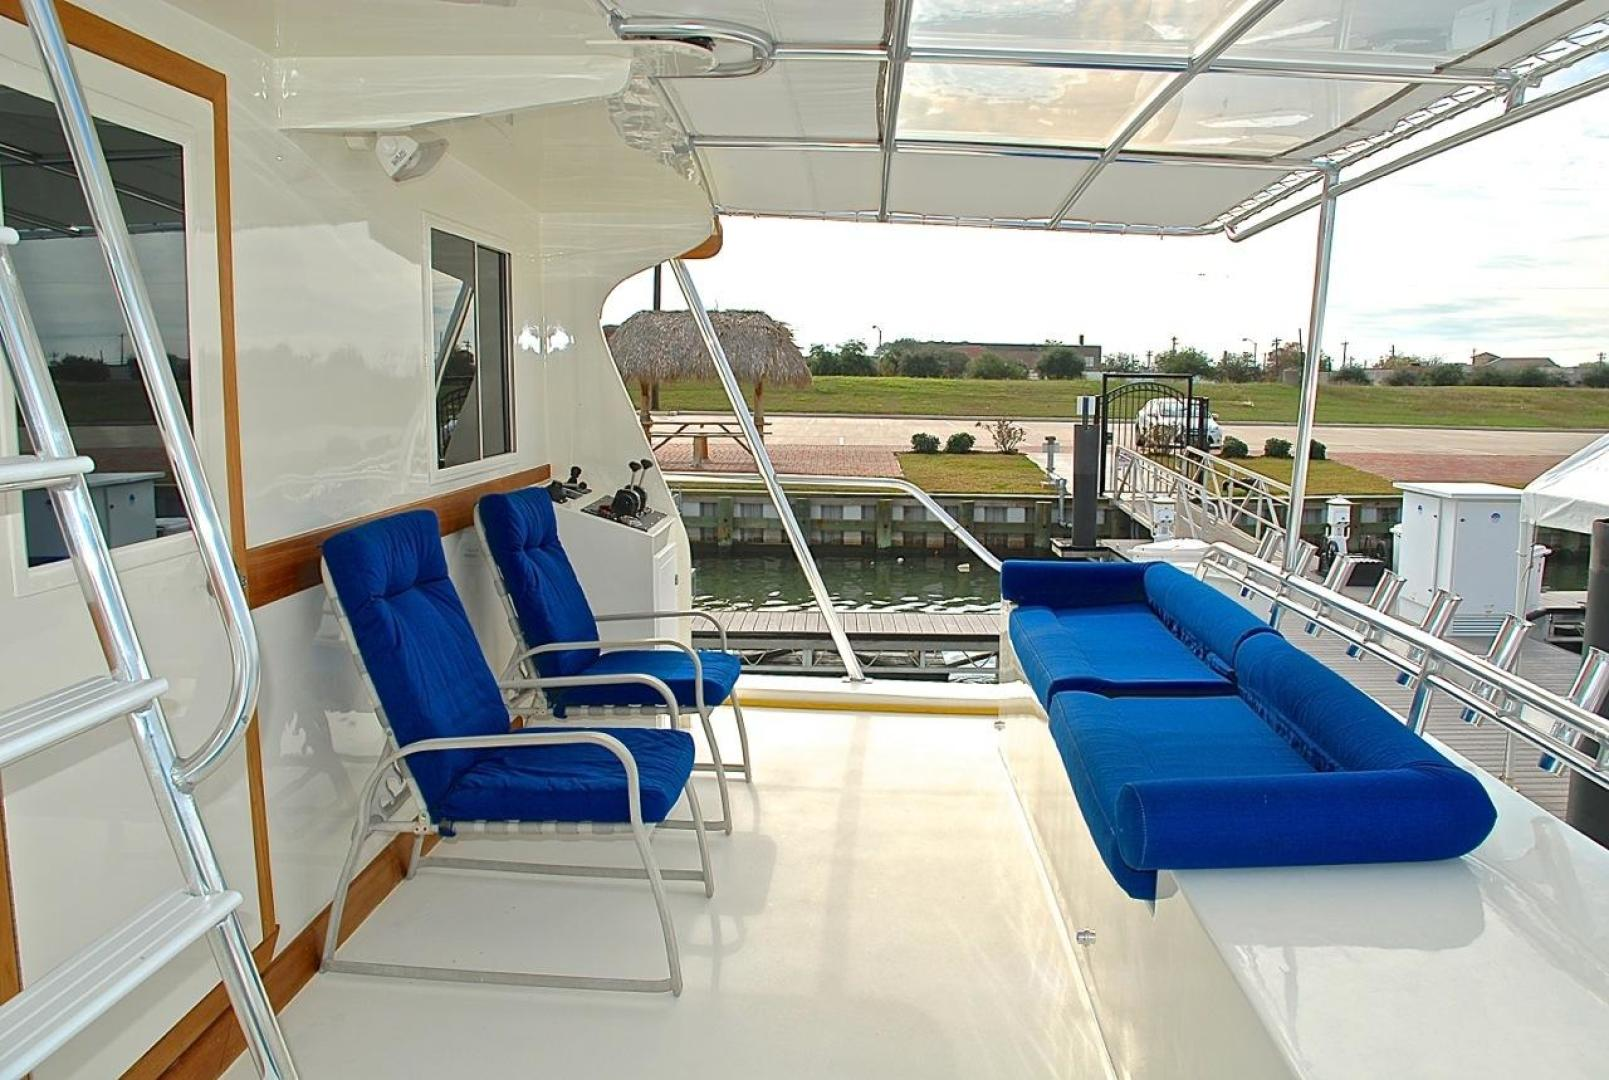 Infinity-Cockpit Motor Yacht 2001-Dont Matter Houston-Texas-United States-Lower Aft Deck View 1-1005570 | Thumbnail